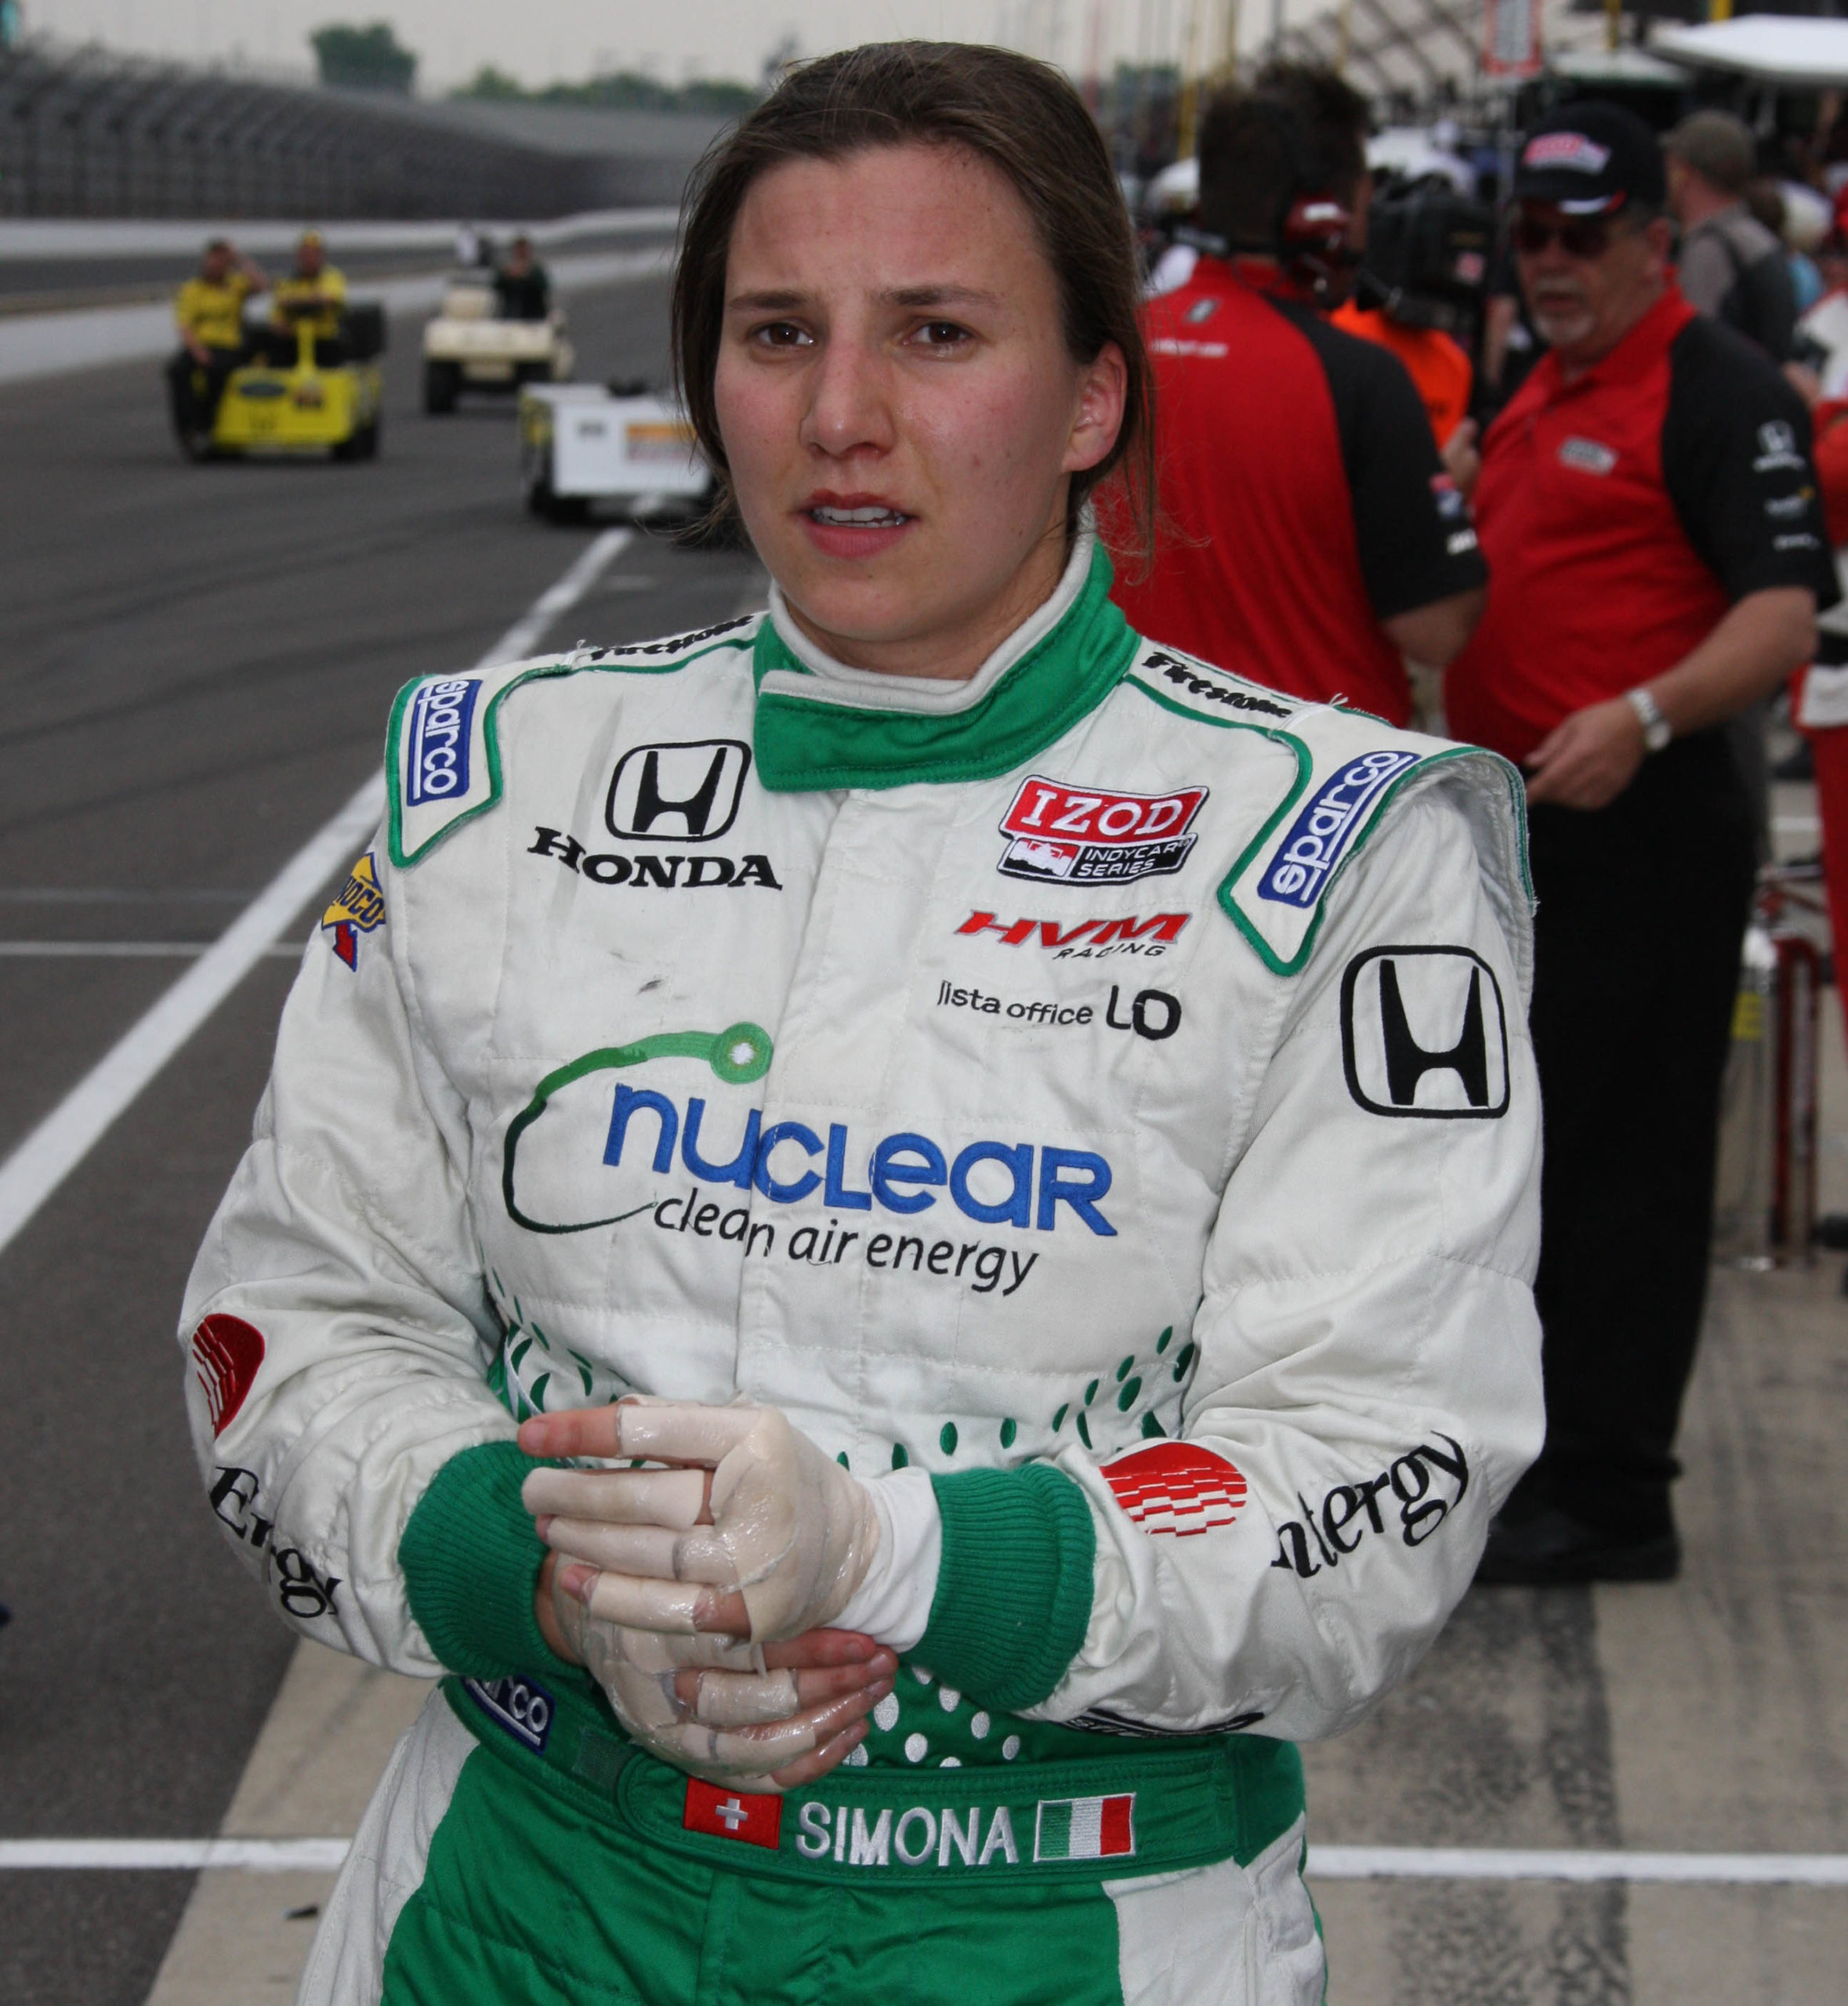 Simona de Silvestro at 2011 Indy qualifying